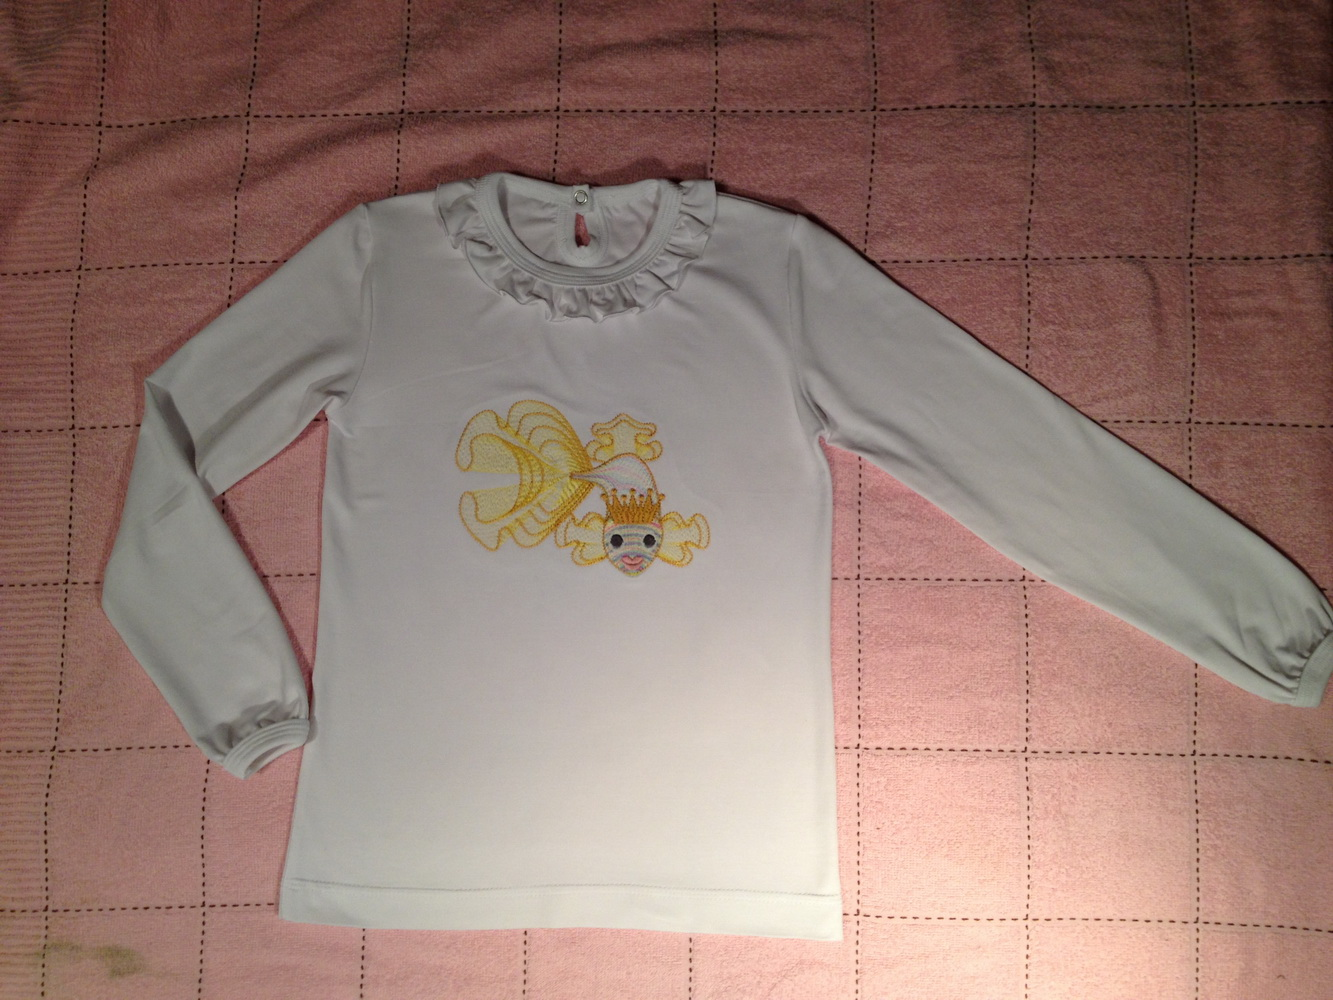 Gold fish on white shirt embroidered